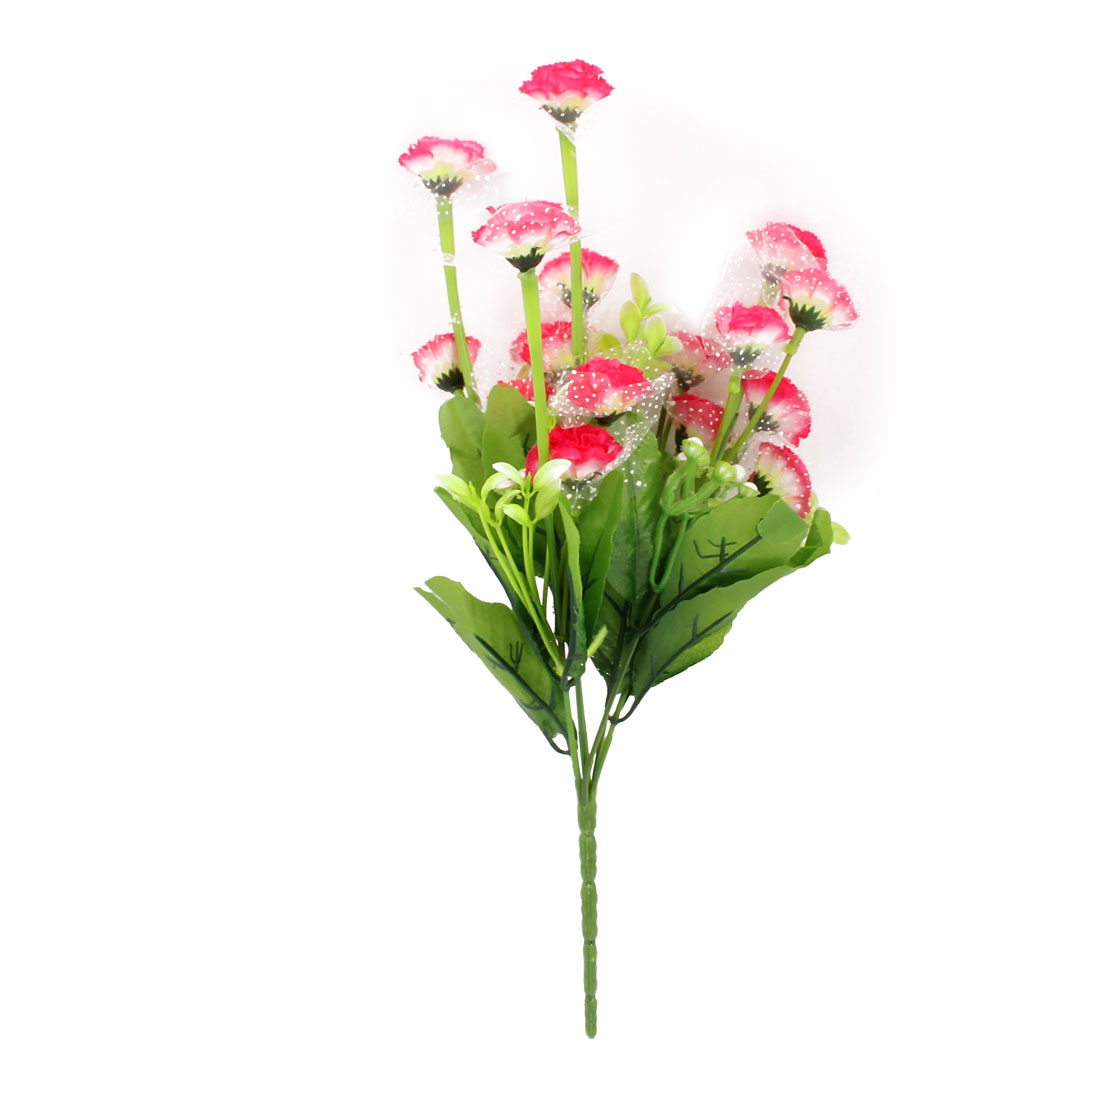 Home Wedding Party Decor Artificial Flowers Ornament Pink Green 33cm Long